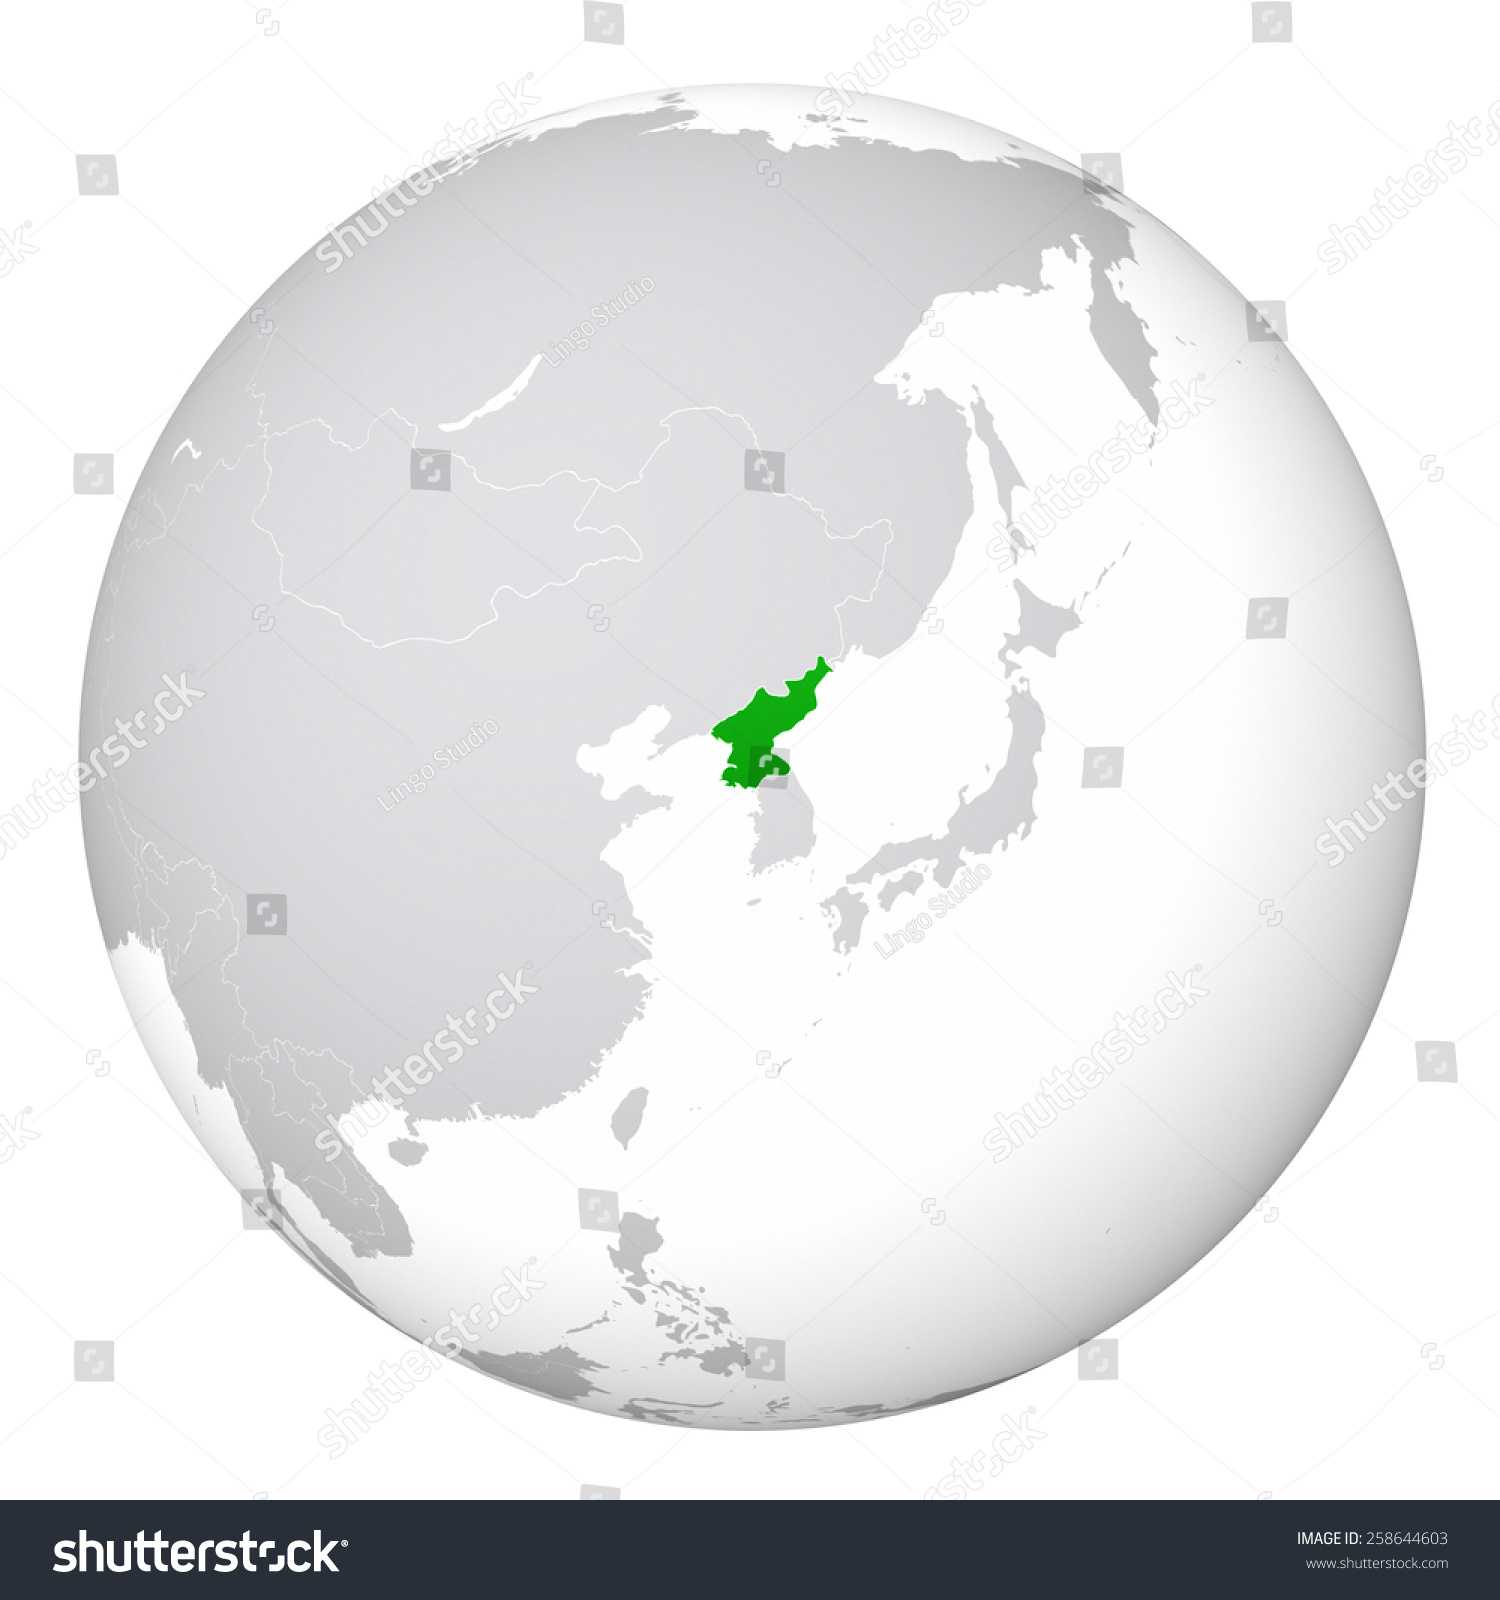 World map north korea stock illustration 258644603 shutterstock world map north korea gumiabroncs